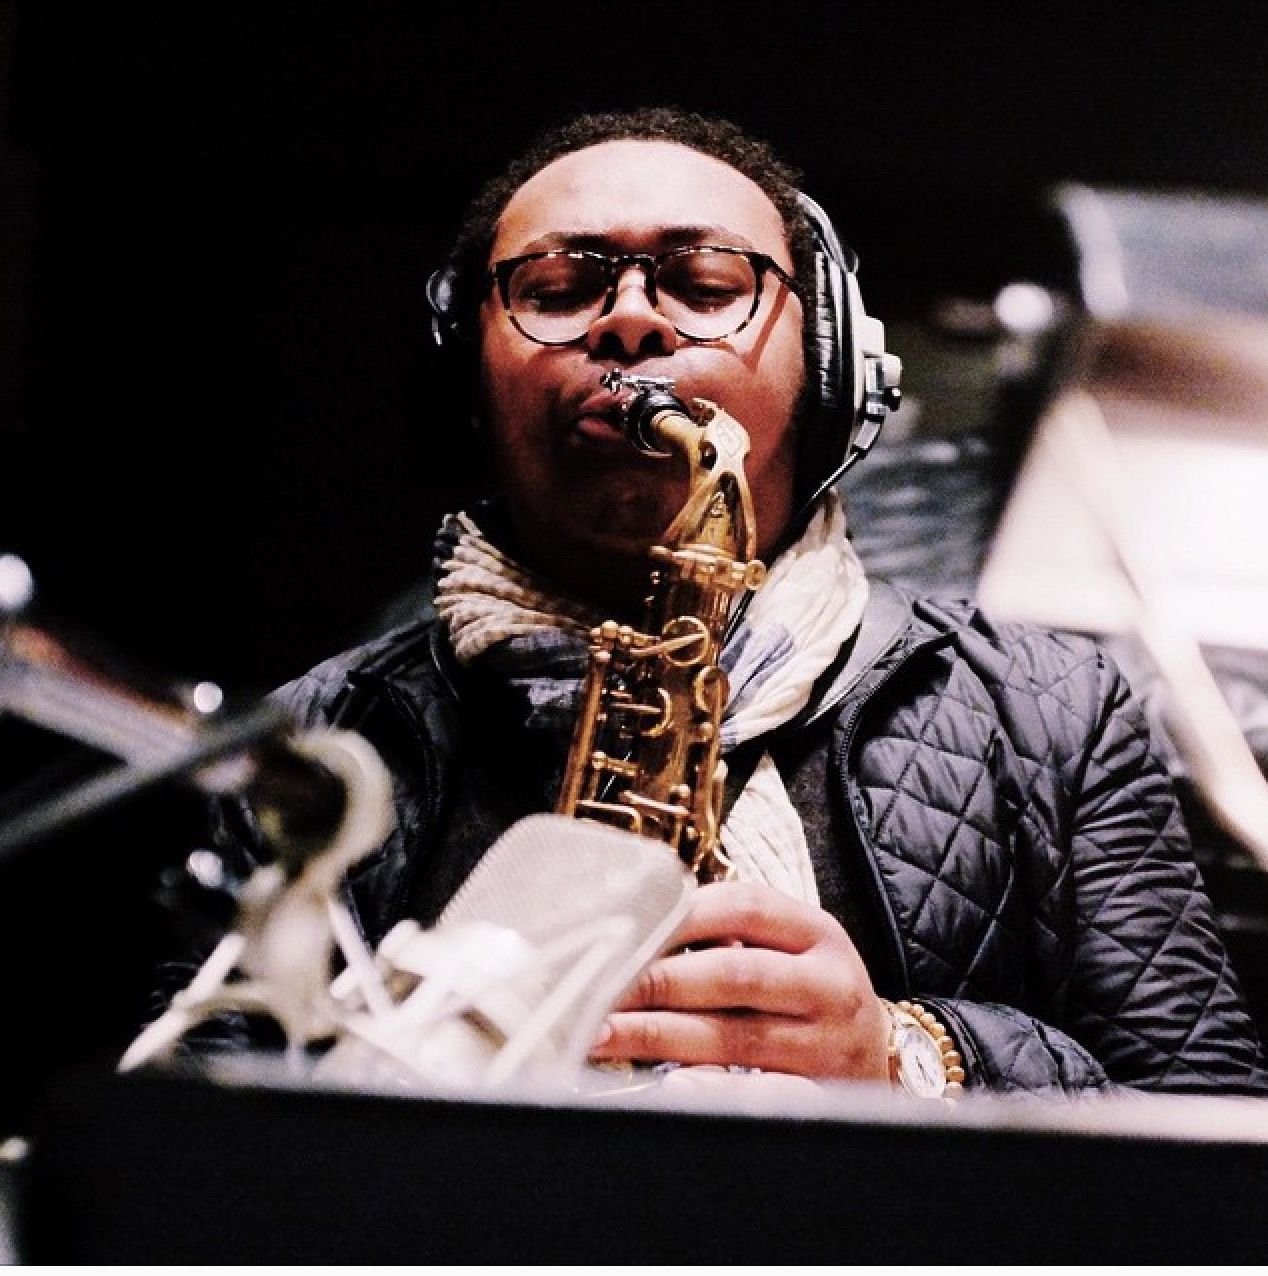 Immanuel Wilkins Trio Feat. Joel Ross And Nazir Ebo At The Intercontinental New York Barclay